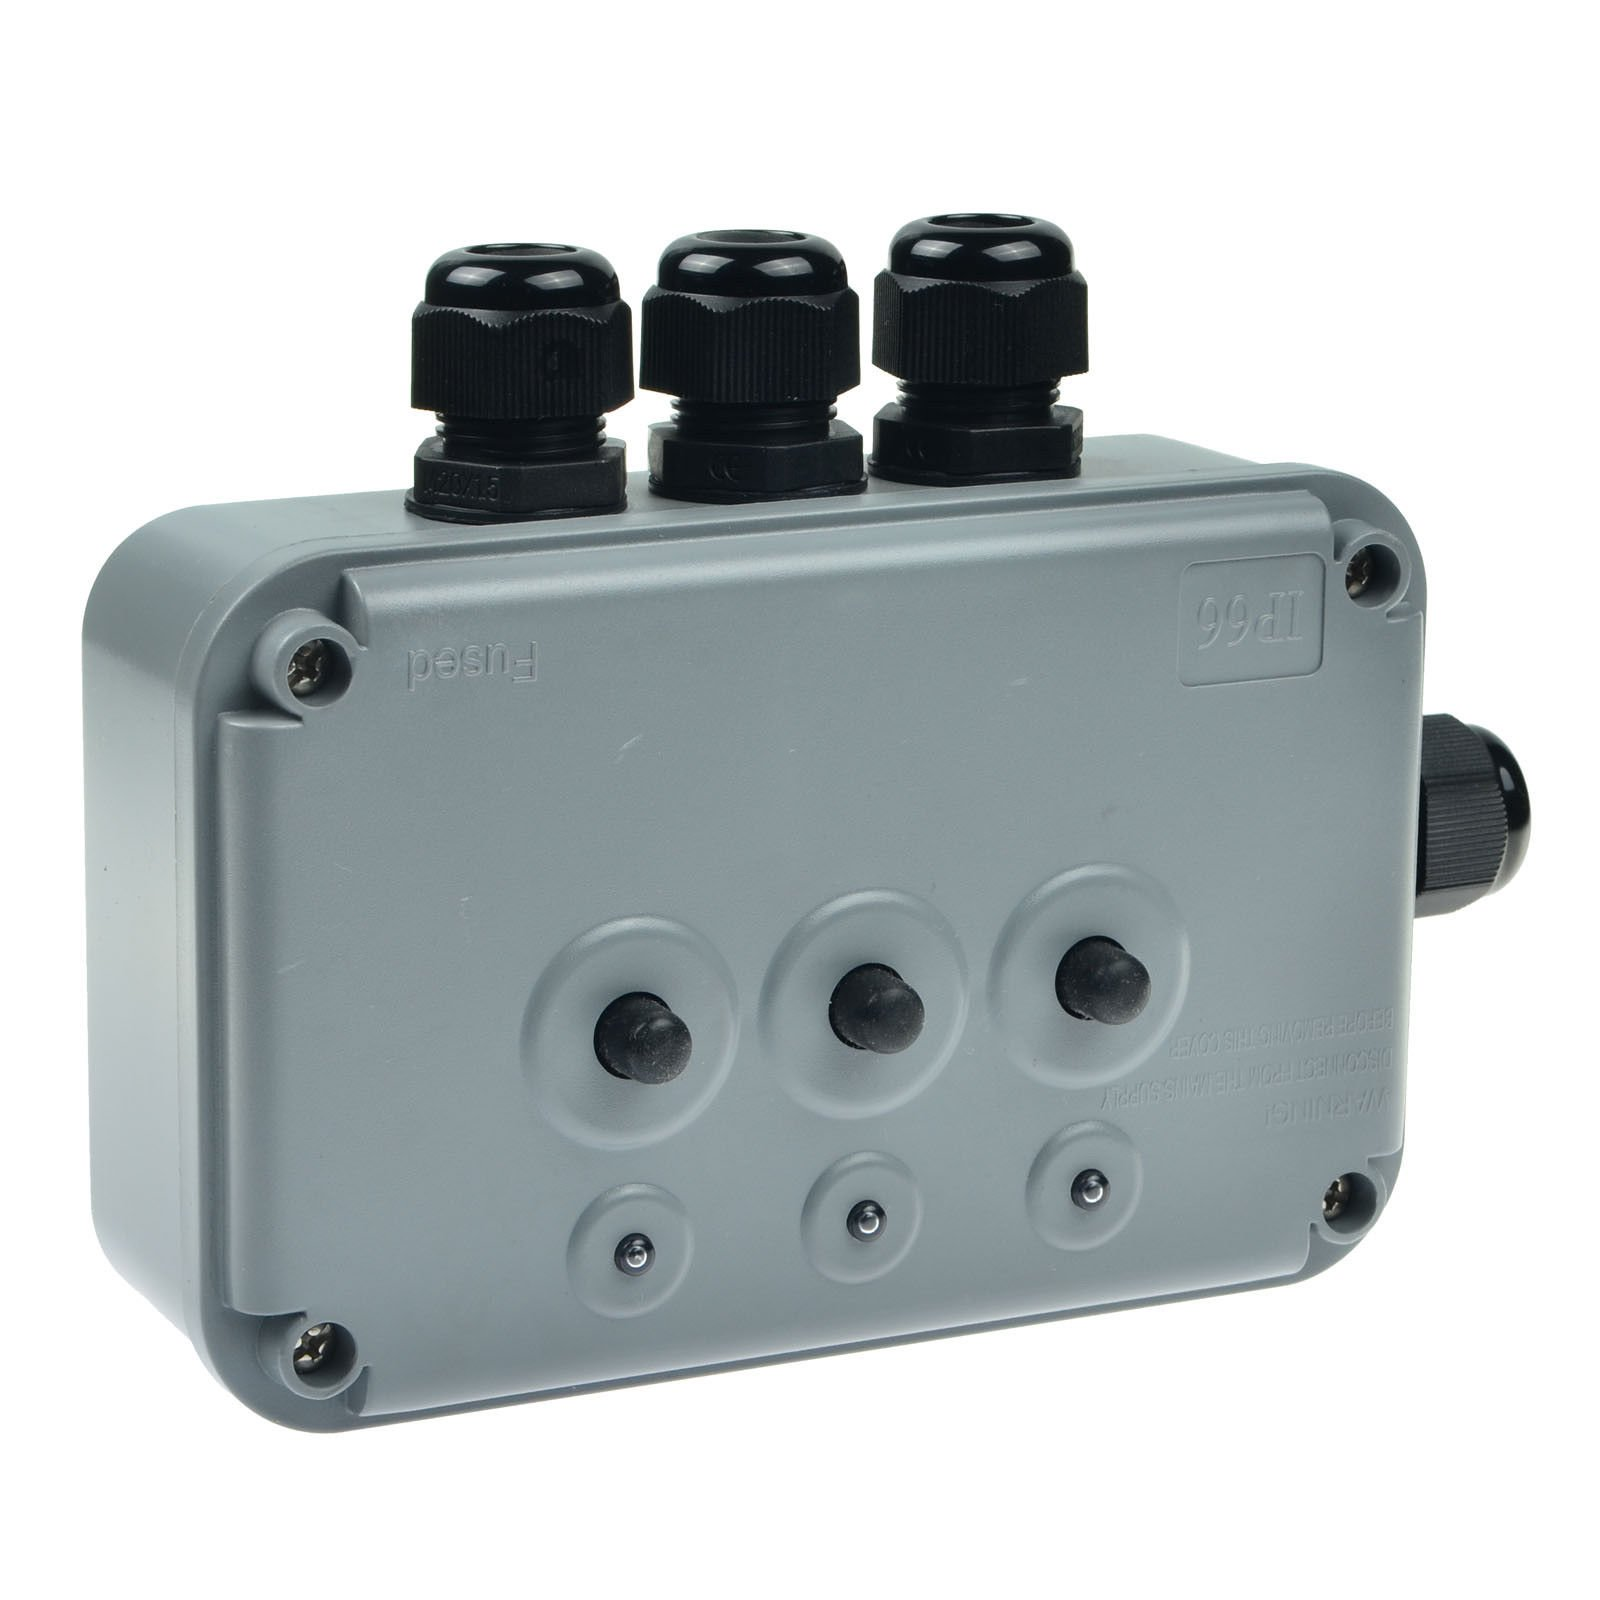 GREENCYCLE HO-044-1 IP66 Rated Weatherproof 3 Gang Power Control Switch with 4 Adjustable External Gland Cable for Outdoor Use